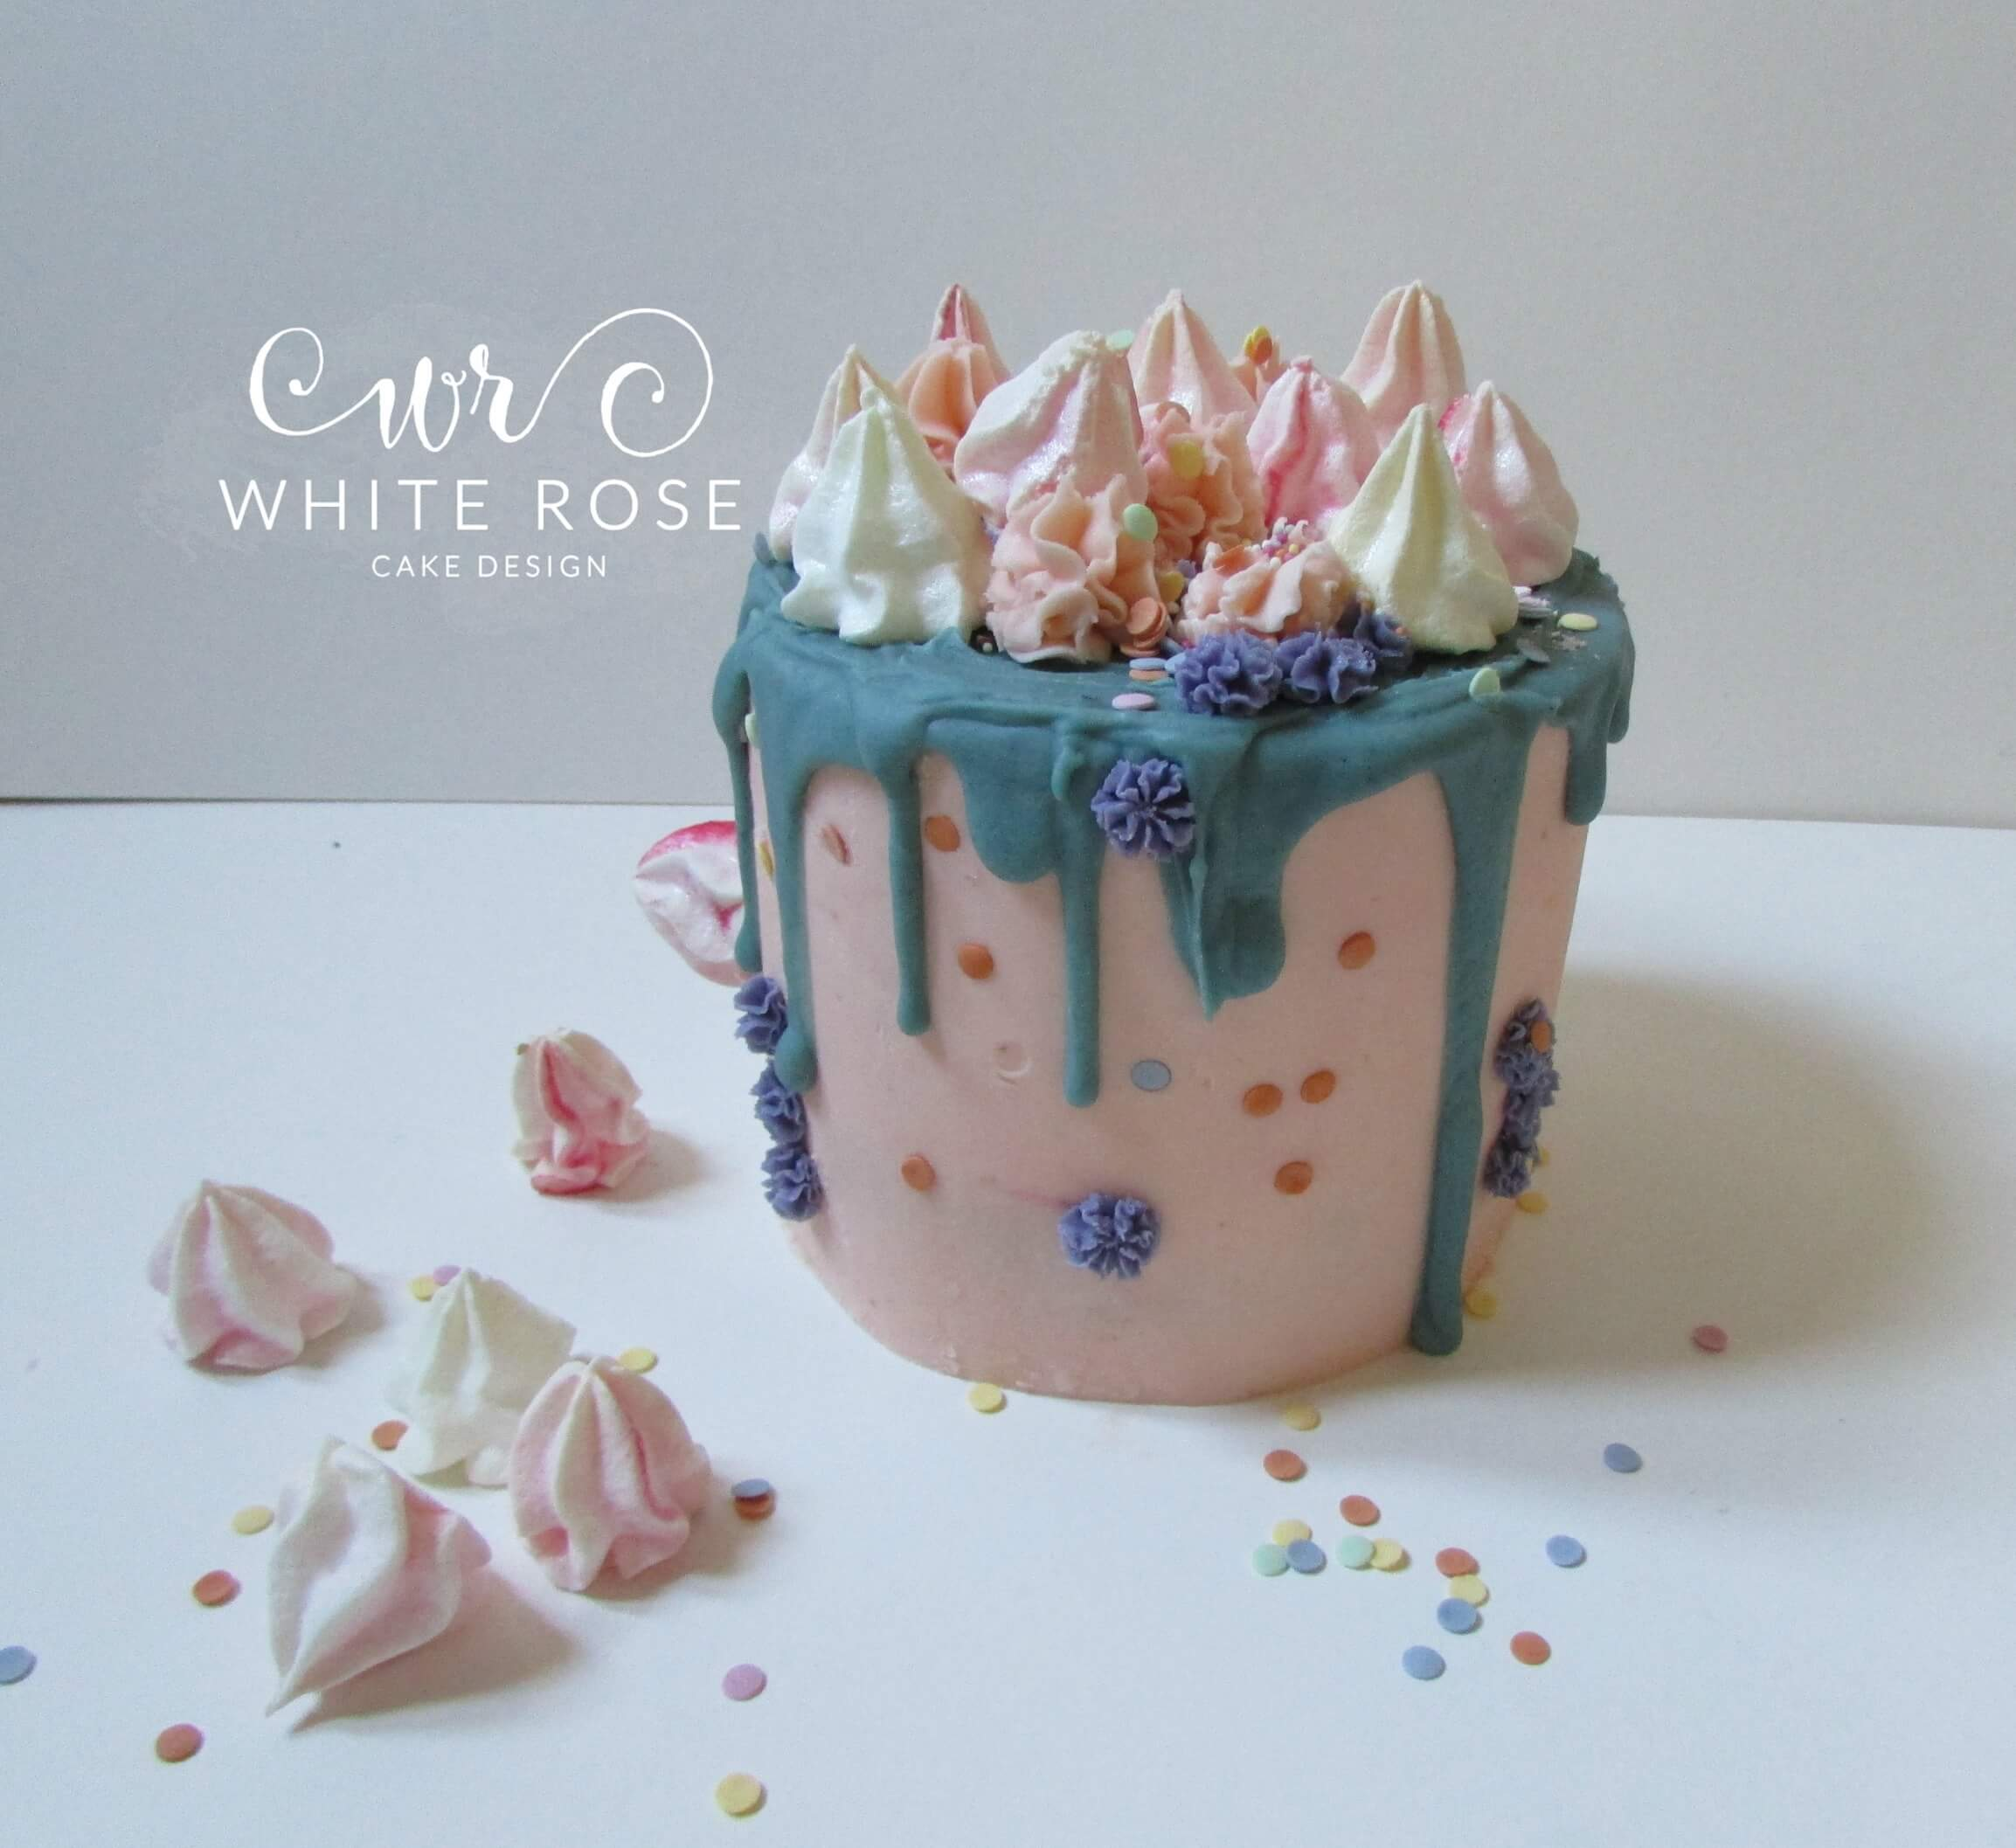 Single Tier Drippy Birthday Cake with Meringue Kisses Huddersfield Cake Maker3